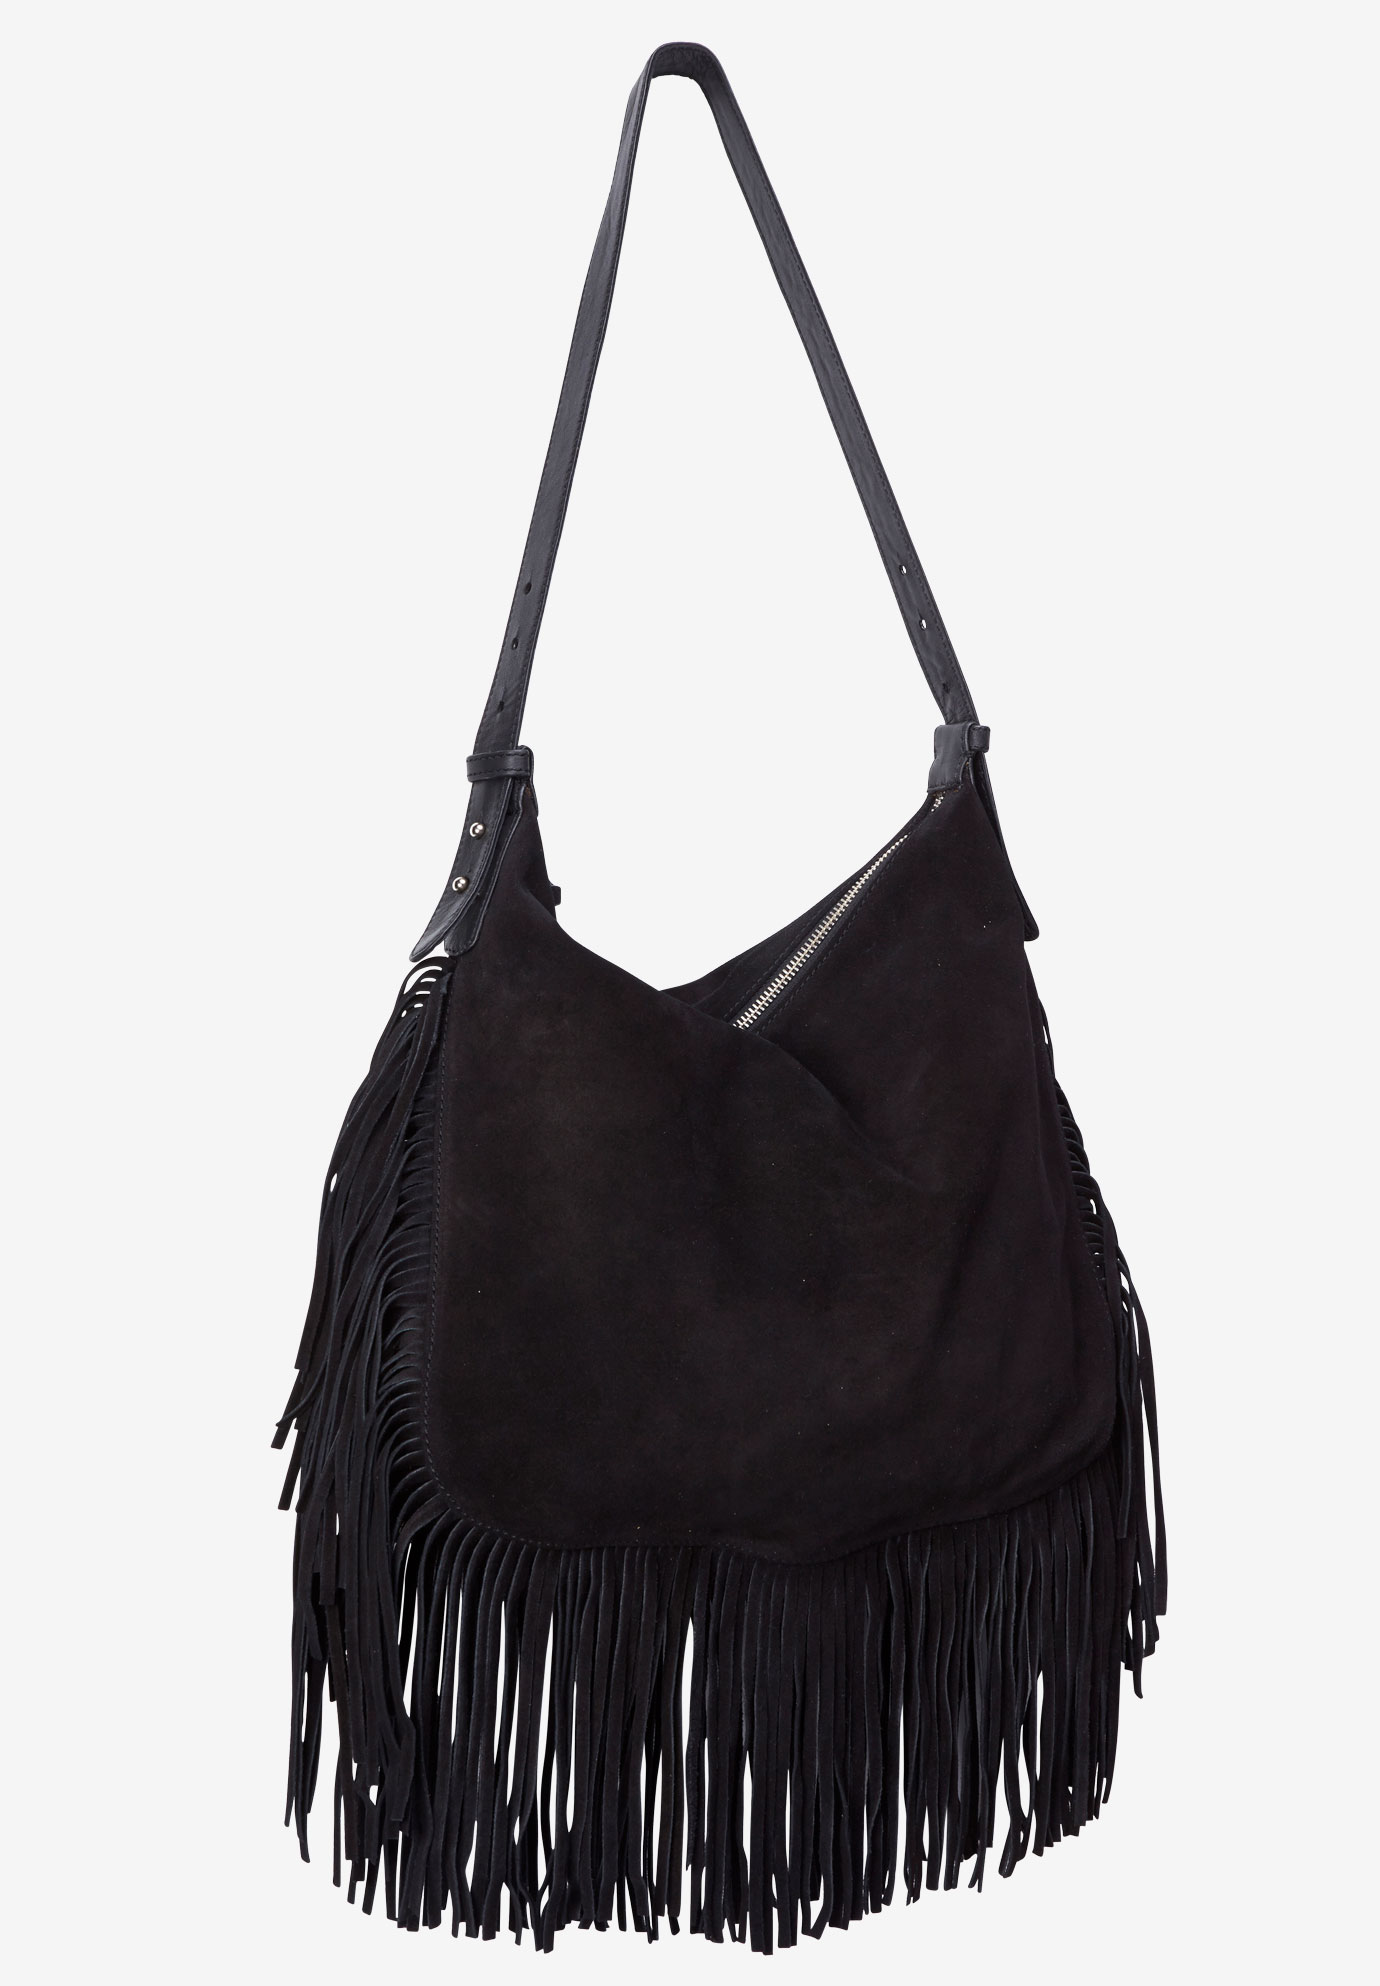 Suede Fringe Handbag By Ellos Black